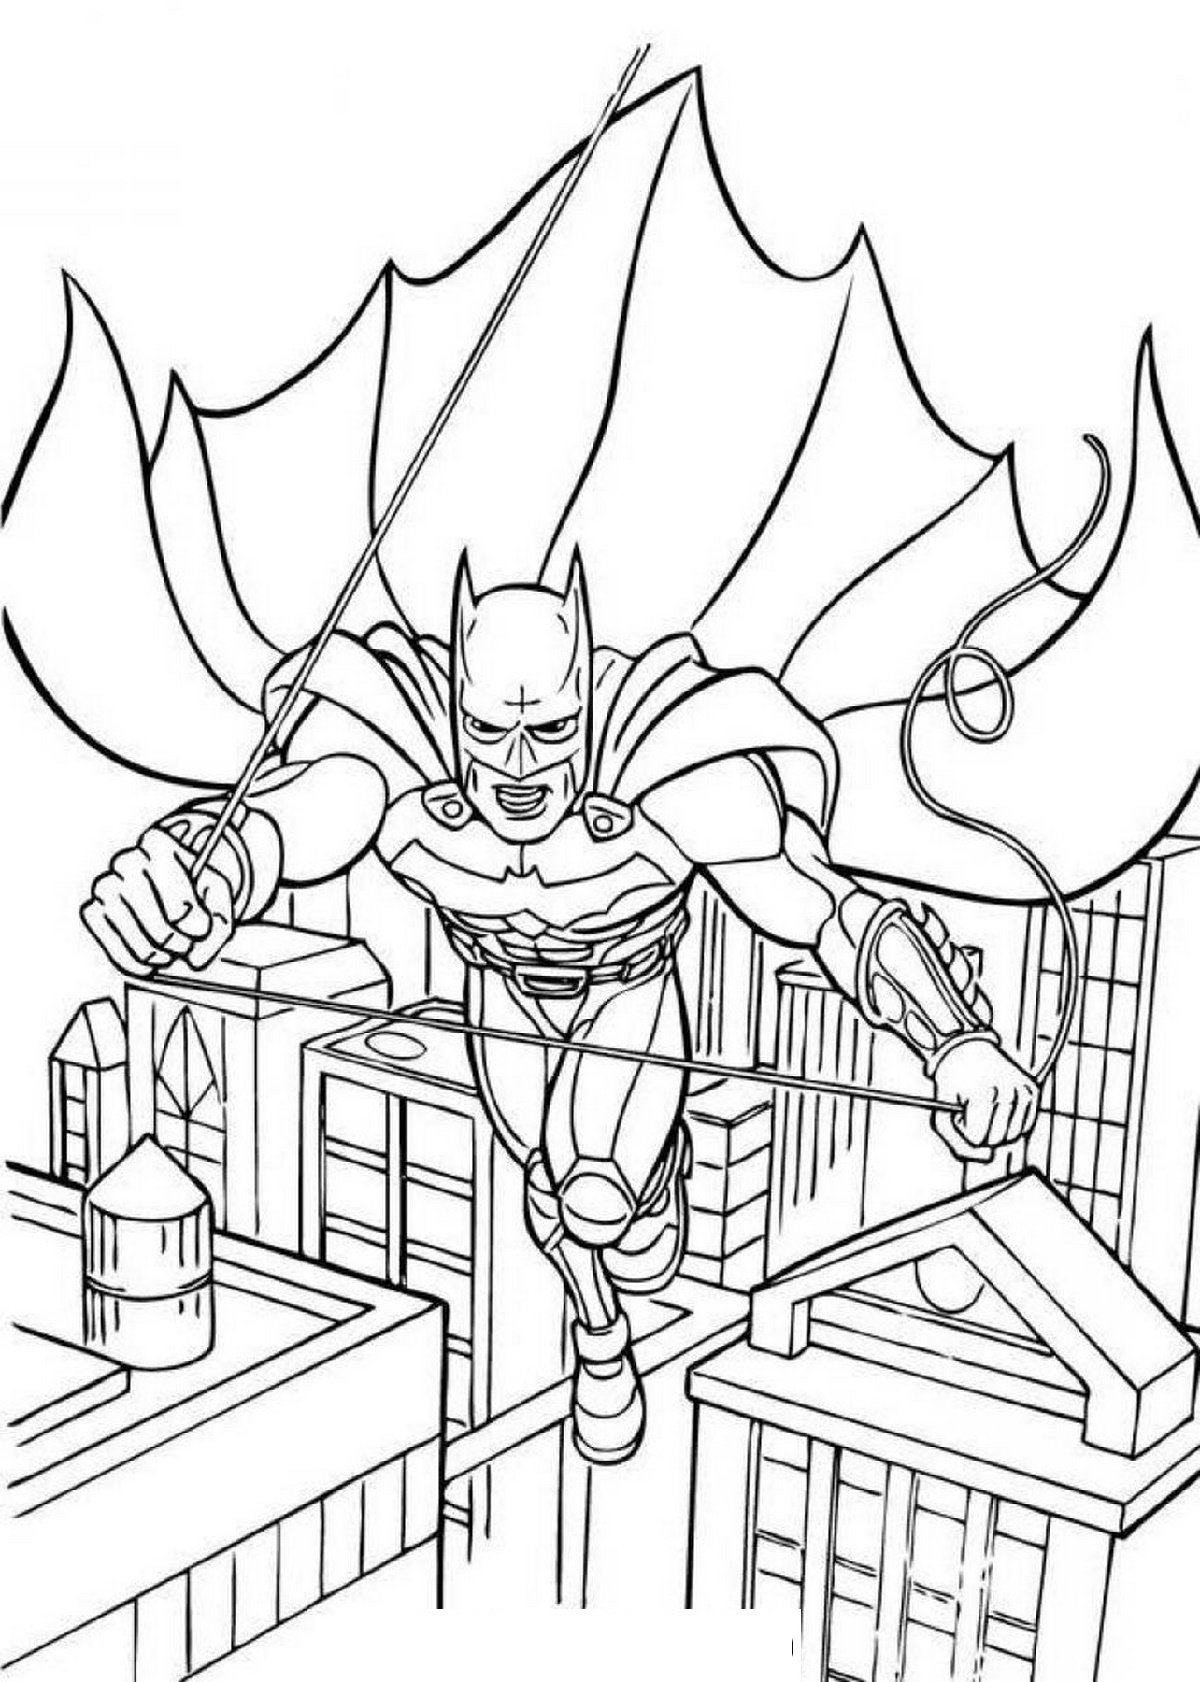 Batman-Coloring-To-Print